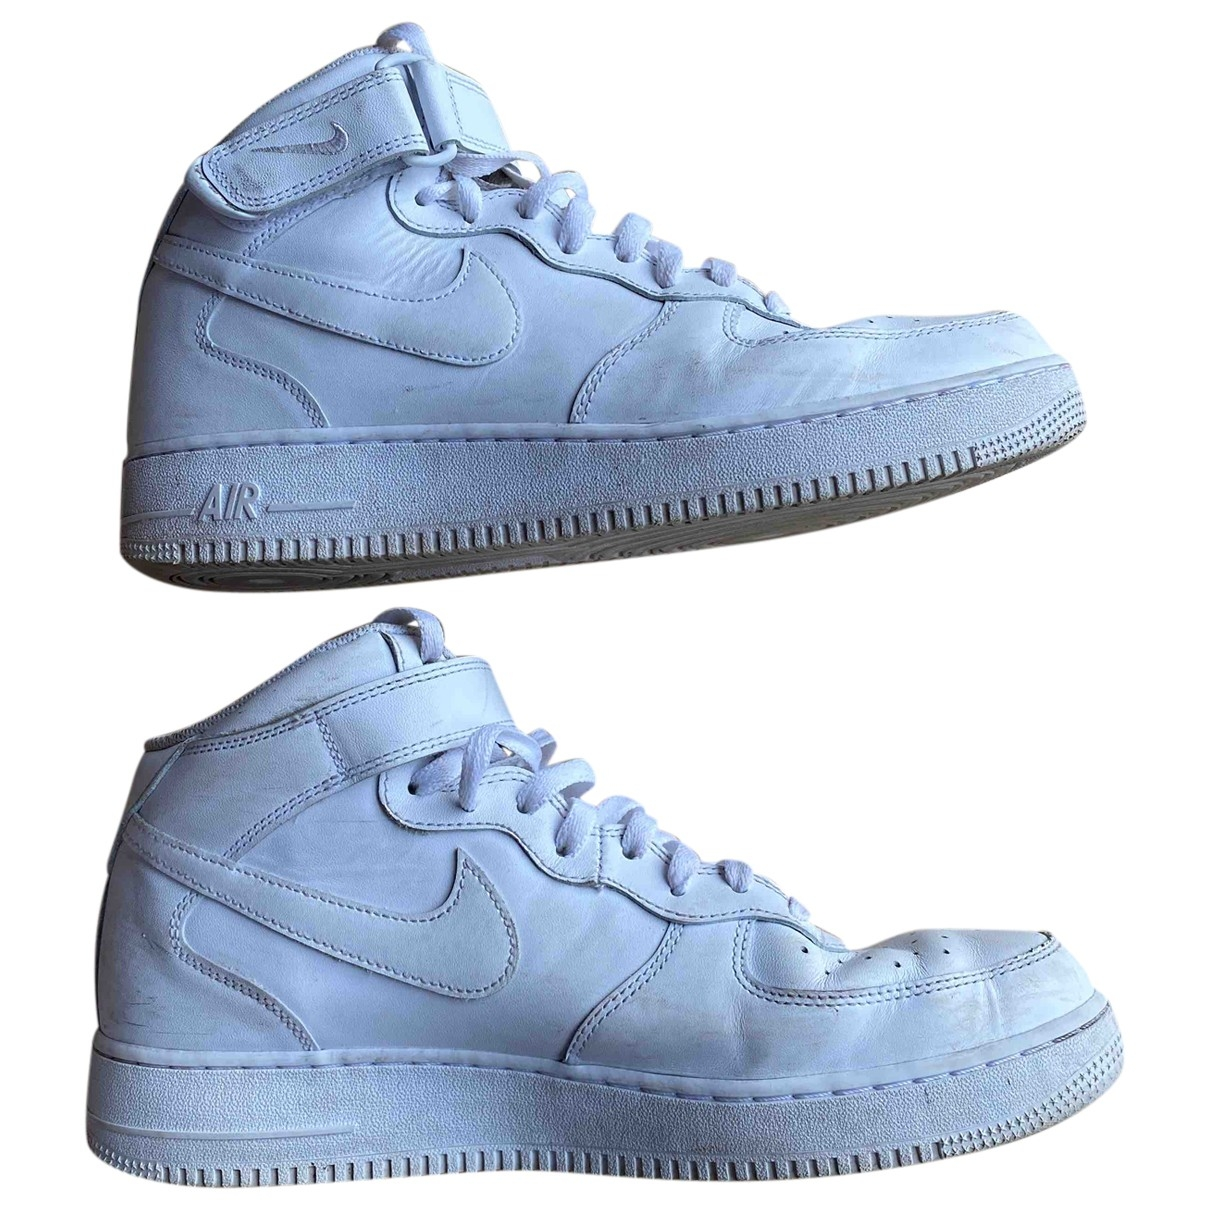 Nike Air Force 1 White Leather Trainers for Men 45 EU